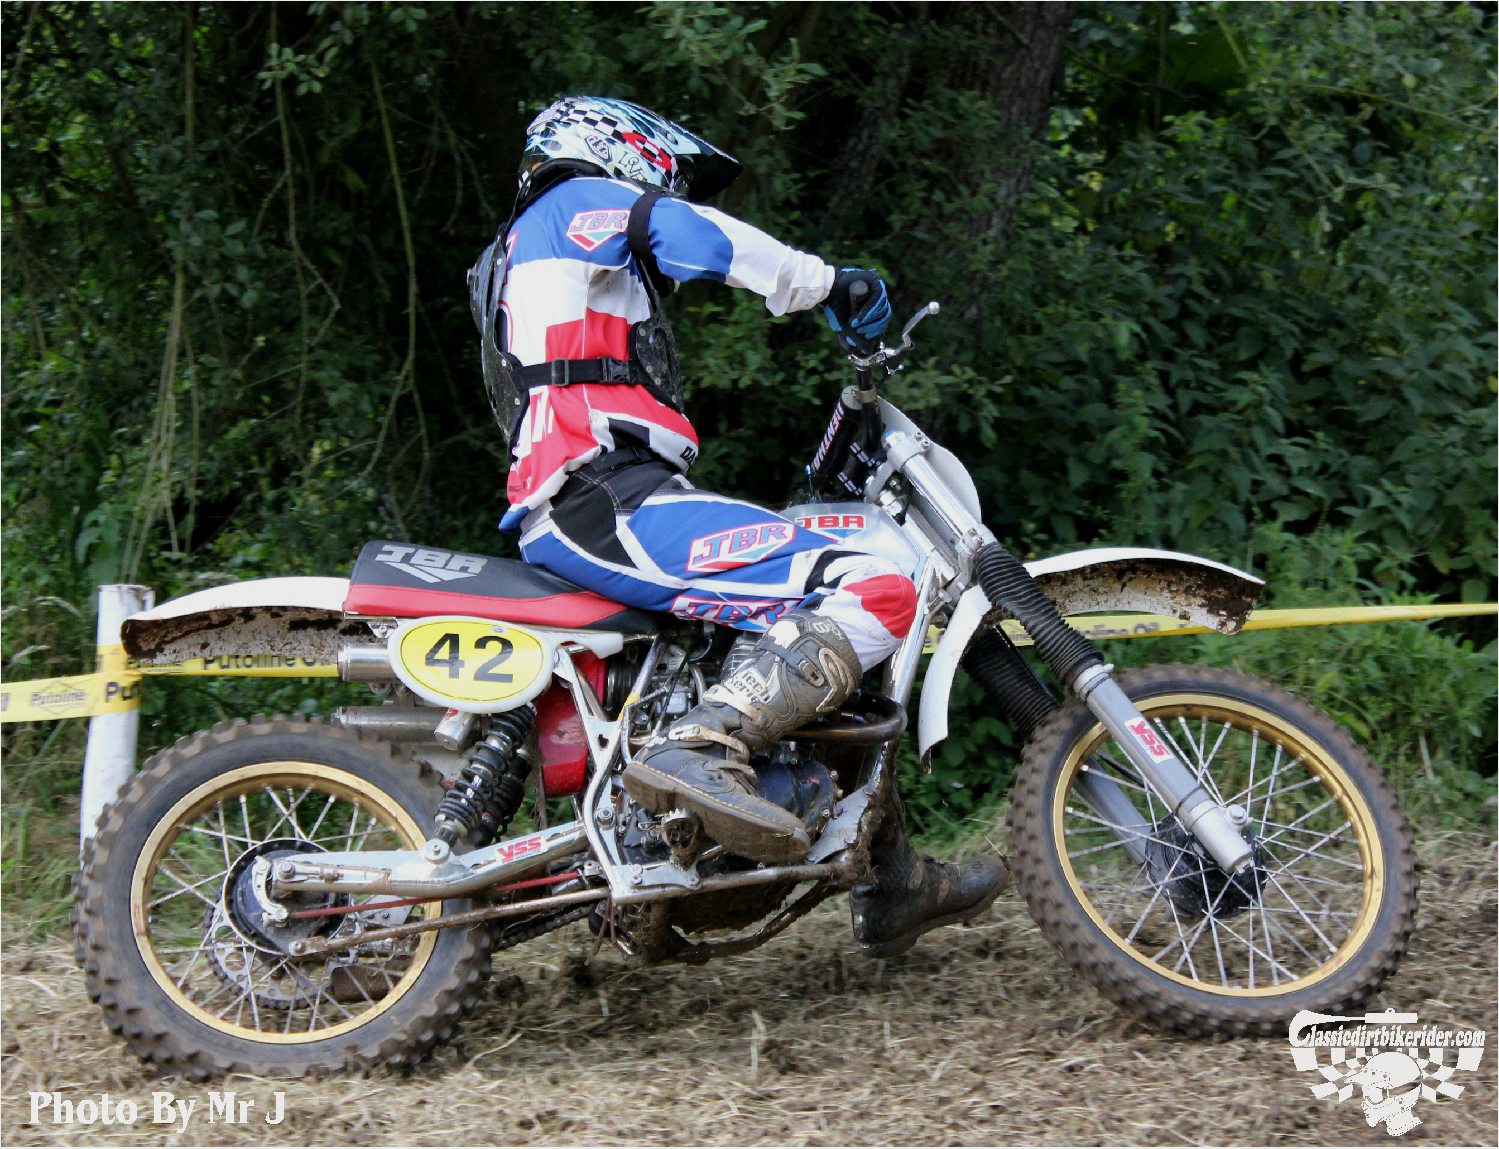 king of the castle 2015 photos Farleigh Castle twinshock motocross classicdirtbikerider.com 38